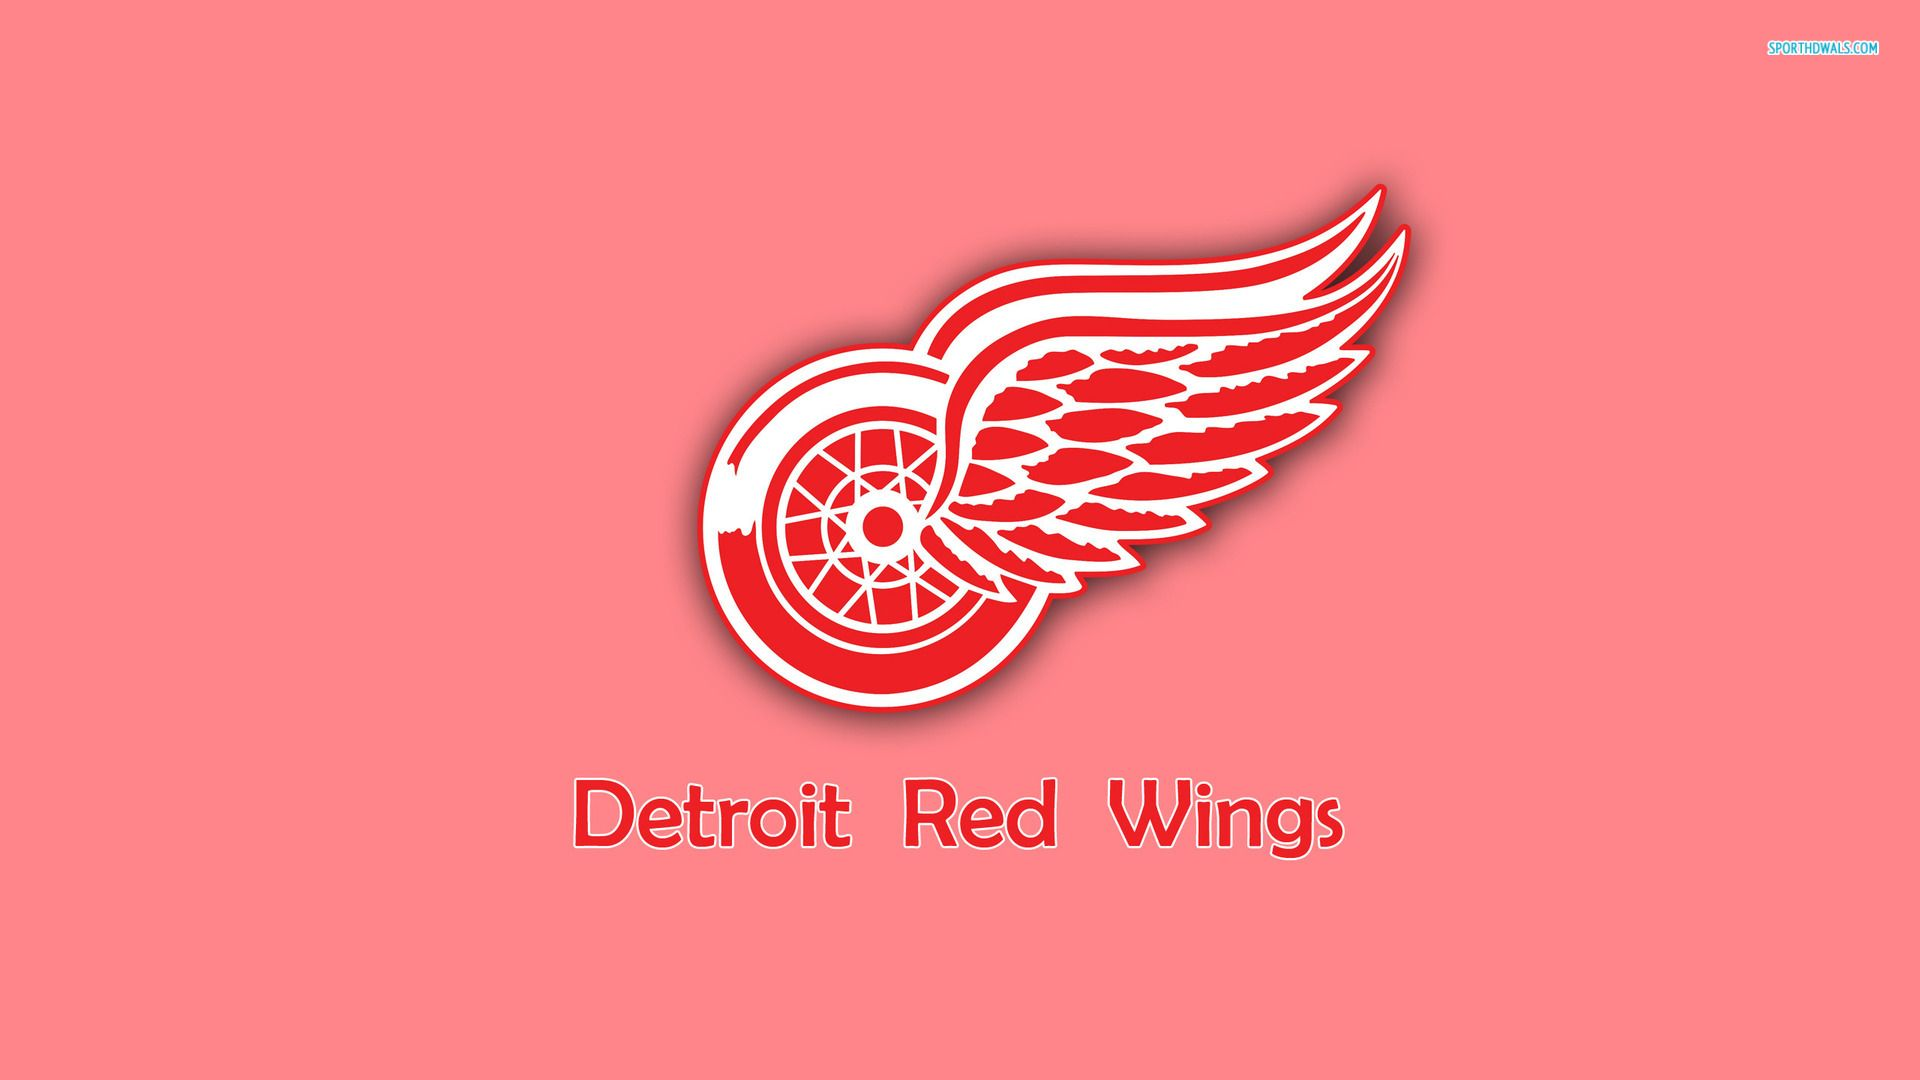 Images Of The Red Wings Detroit Red Wings Wallpaper 1920x1080